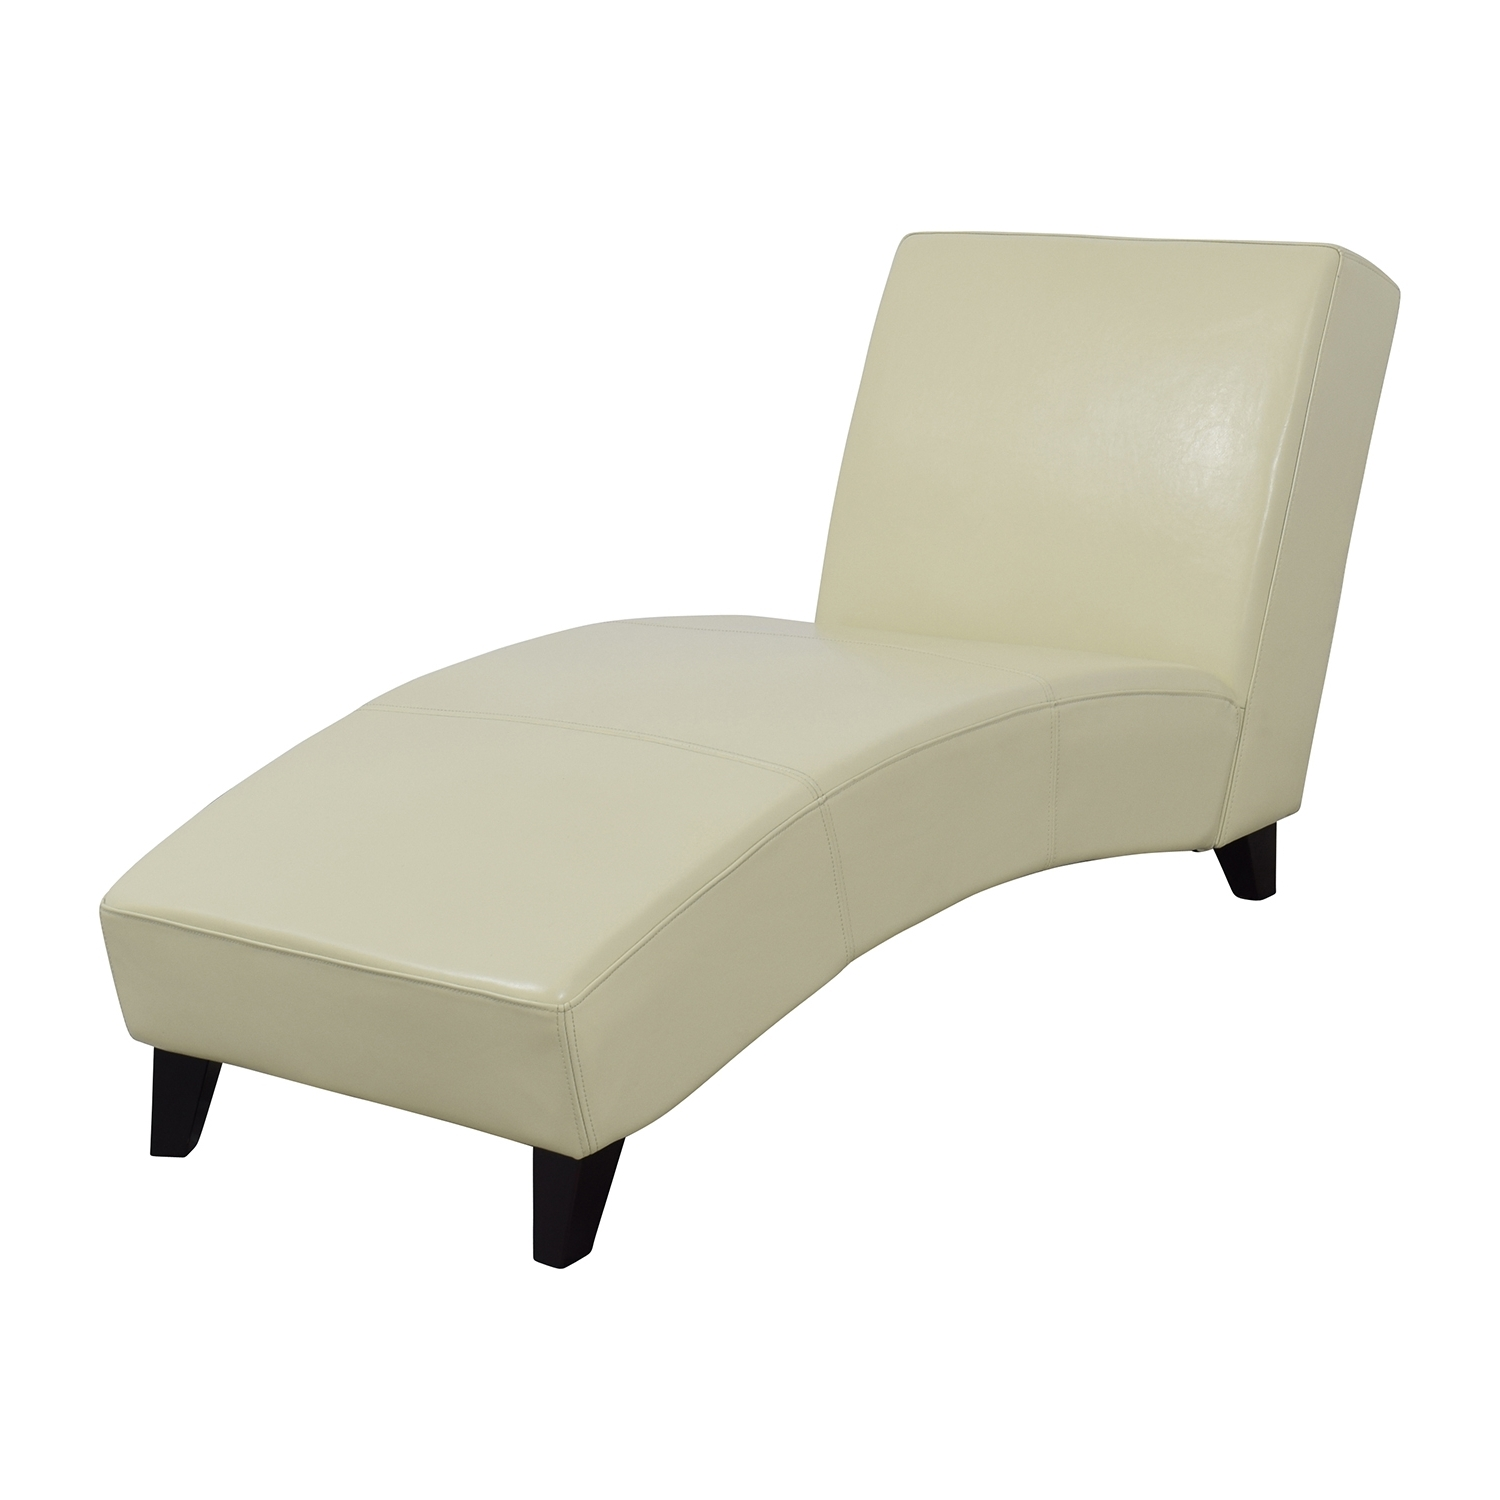 [%90% Off – Wayfair Wayfair White Leather Chaise / Sofas Inside Most Recently Released White Leather Chaises|White Leather Chaises With 2018 90% Off – Wayfair Wayfair White Leather Chaise / Sofas|Most Recent White Leather Chaises For 90% Off – Wayfair Wayfair White Leather Chaise / Sofas|Famous 90% Off – Wayfair Wayfair White Leather Chaise / Sofas Pertaining To White Leather Chaises%] (View 9 of 15)